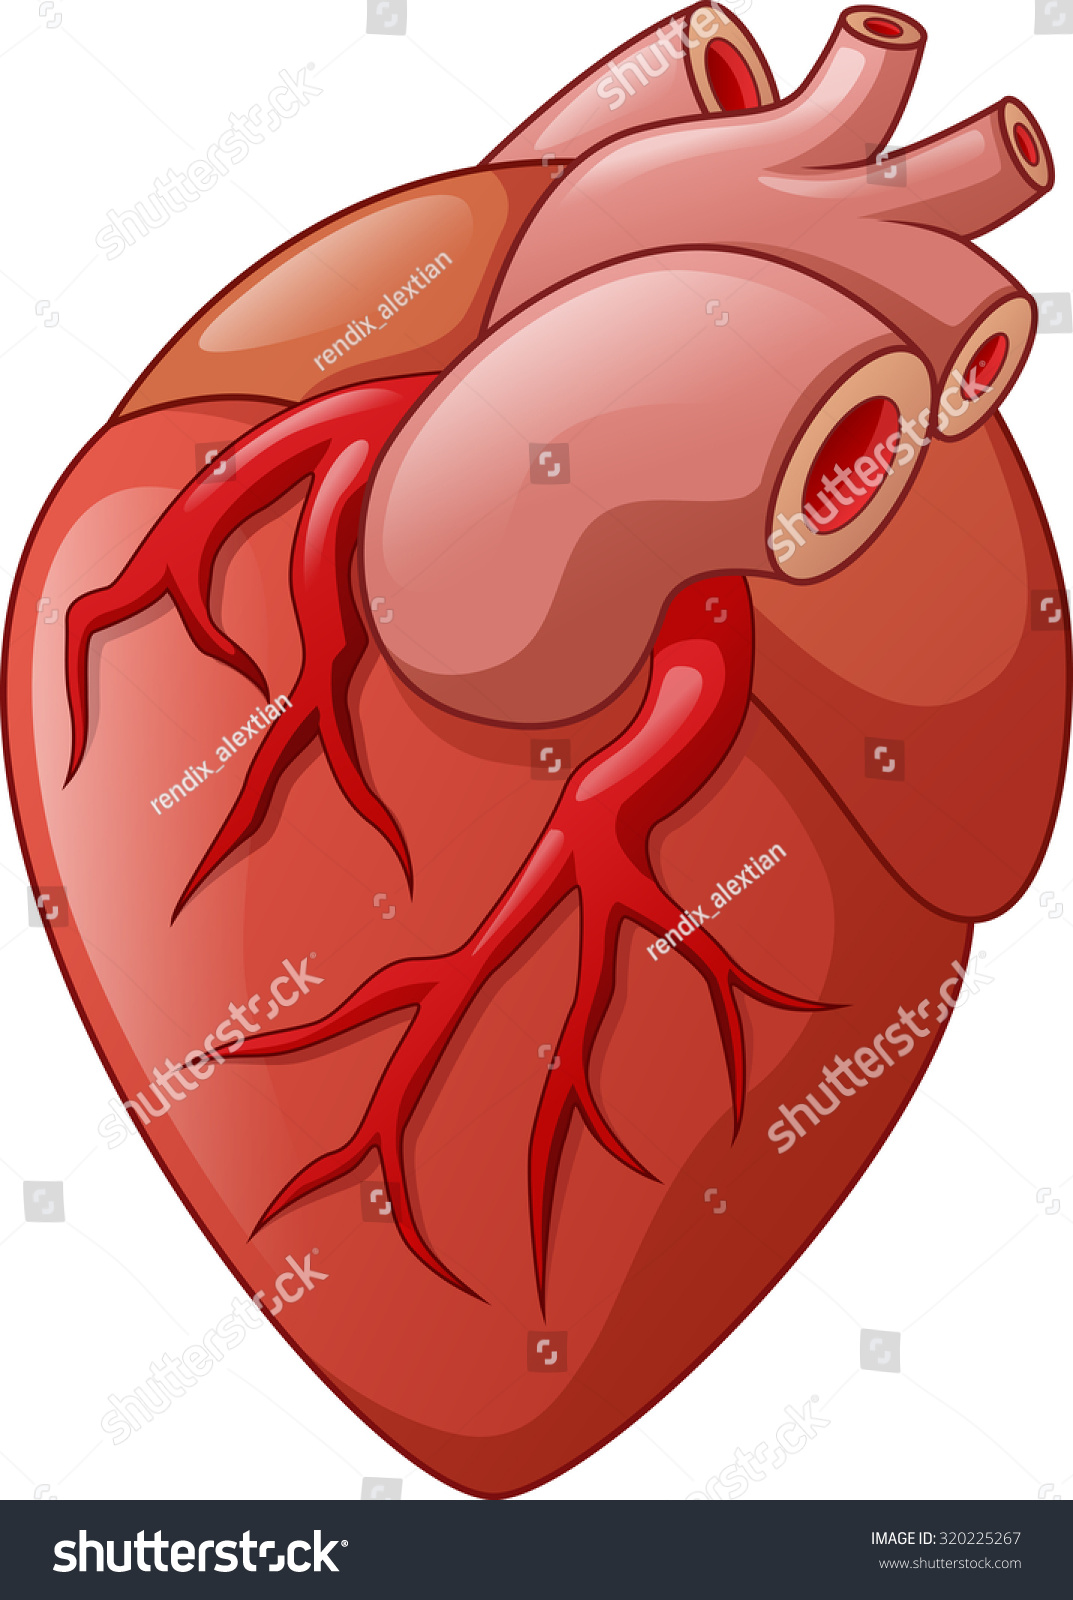 clipart of a human heart - photo #41